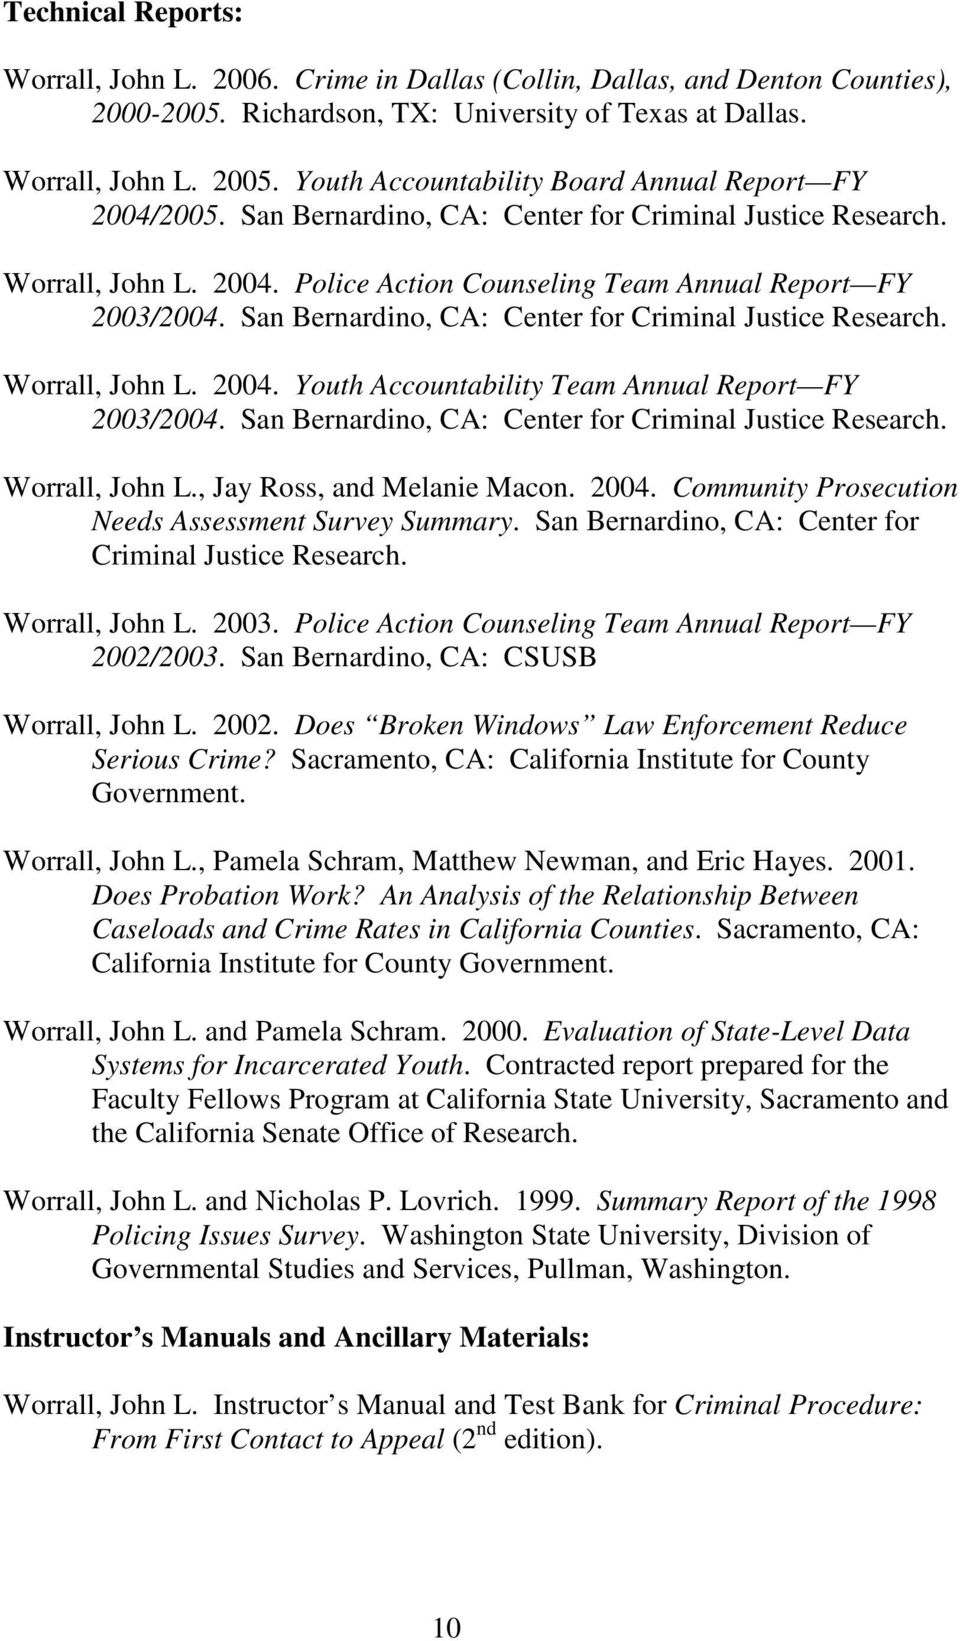 San Bernardino, CA: Center for Criminal Justice Research. Worrall, John L. 2004. Youth Accountability Team Annual Report FY 2003/2004. San Bernardino, CA: Center for Criminal Justice Research.